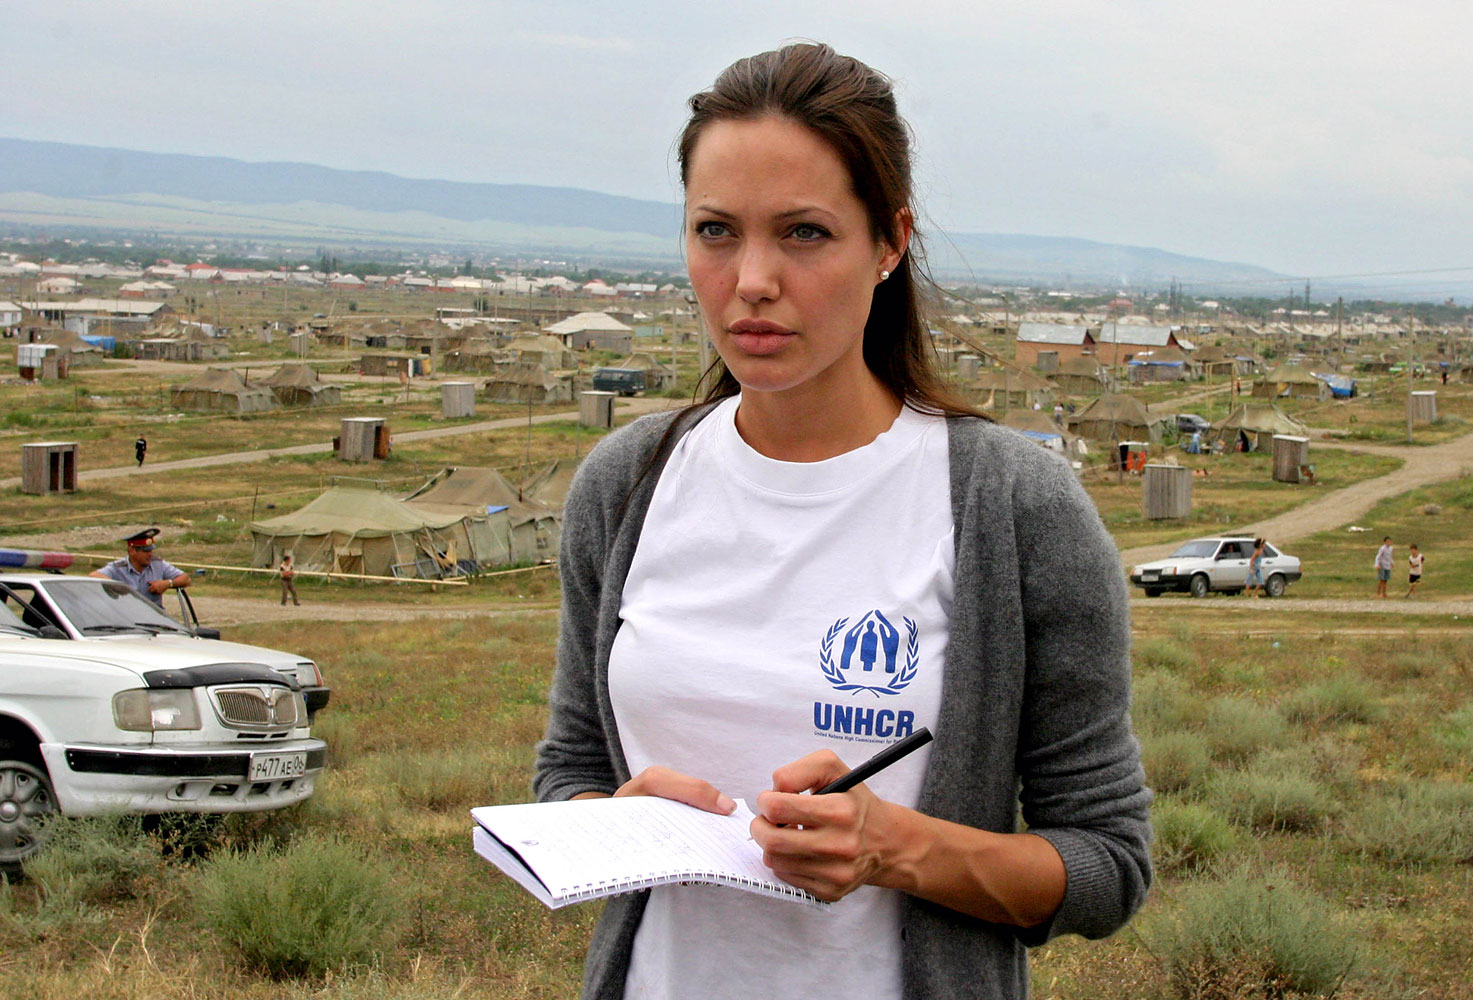 Actress Angelina Jolie visits Bella refugee camp Aug. 22, 2003 in Ingushetia, near the Chechen border in Russia's North Caucasus region.